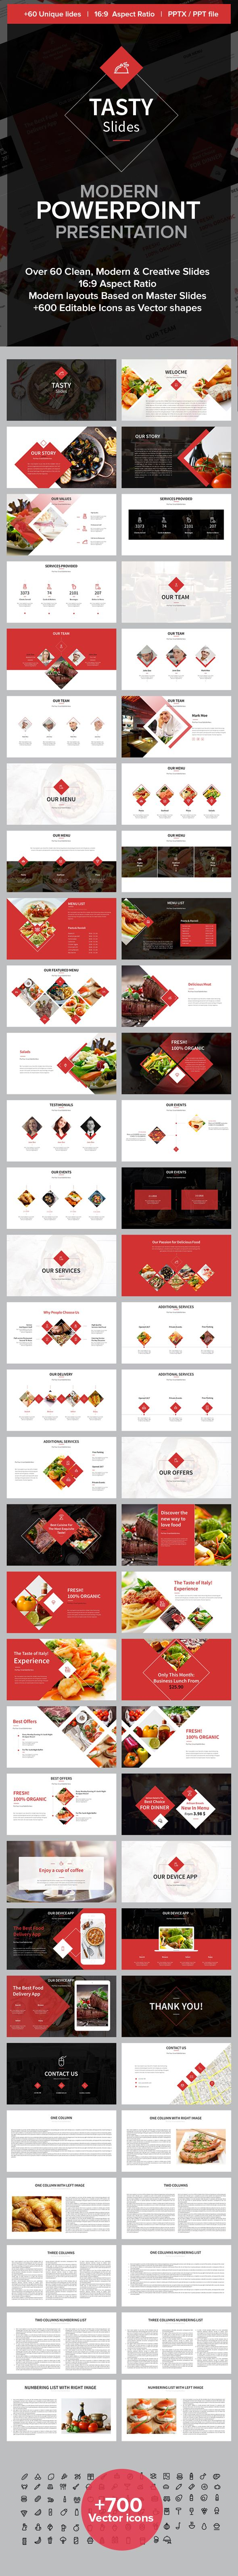 Tasty Slides Powerpoint Presentation Template. Download here: http://graphicriver.net/item/-tasty-slides-powerpoint-presentation/16395633?ref=ksioks